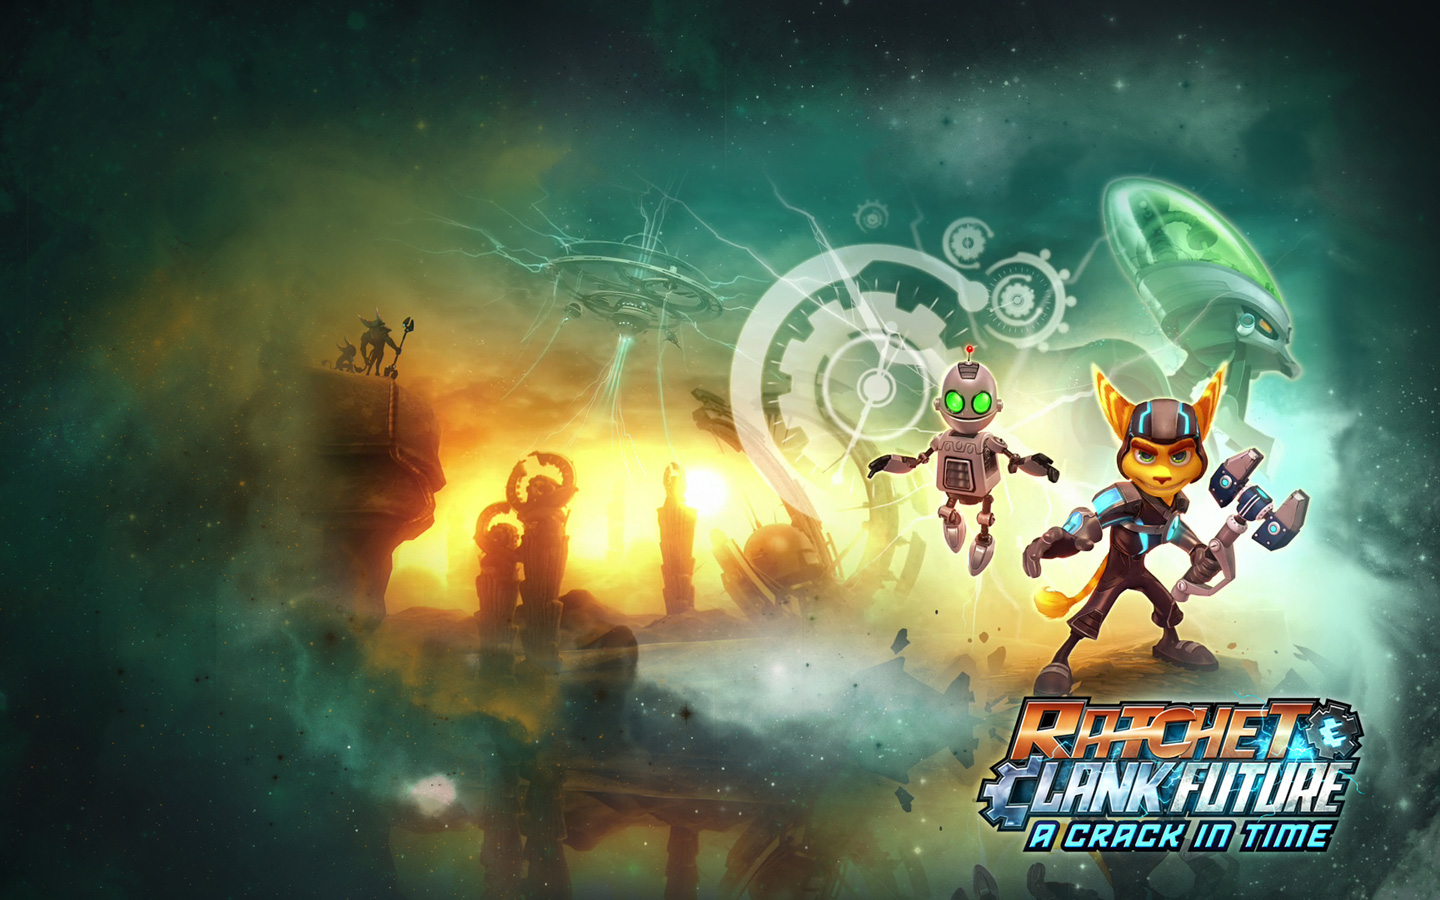 Free Ratchet & Clank Future: A Crack in Time Wallpaper in 1440x900